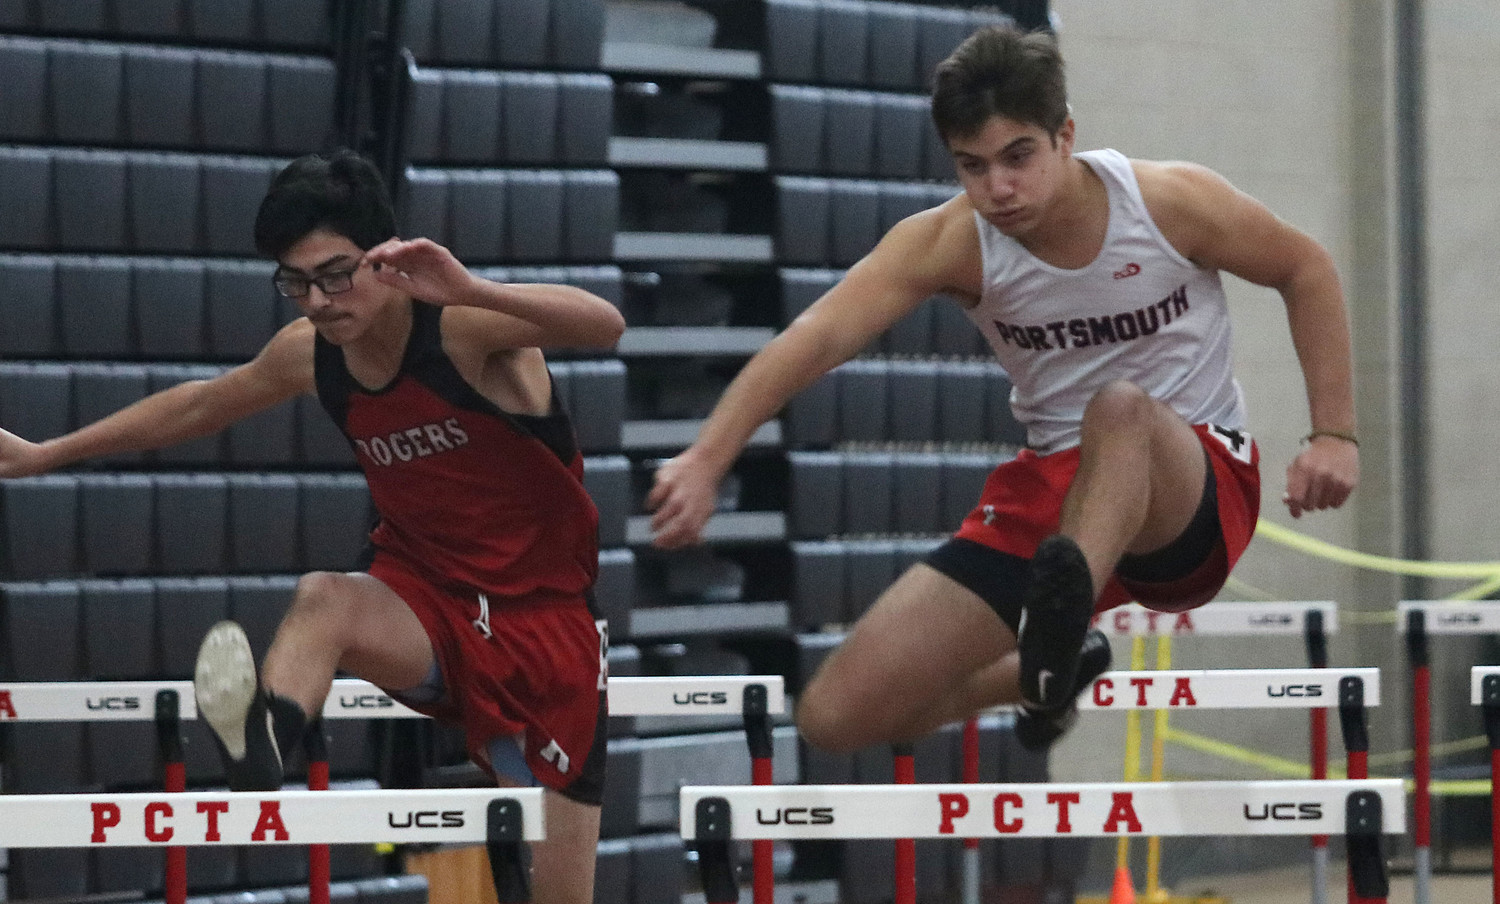 Dryden Eliason leaps over a hurdle during the 55-meter hurdles.